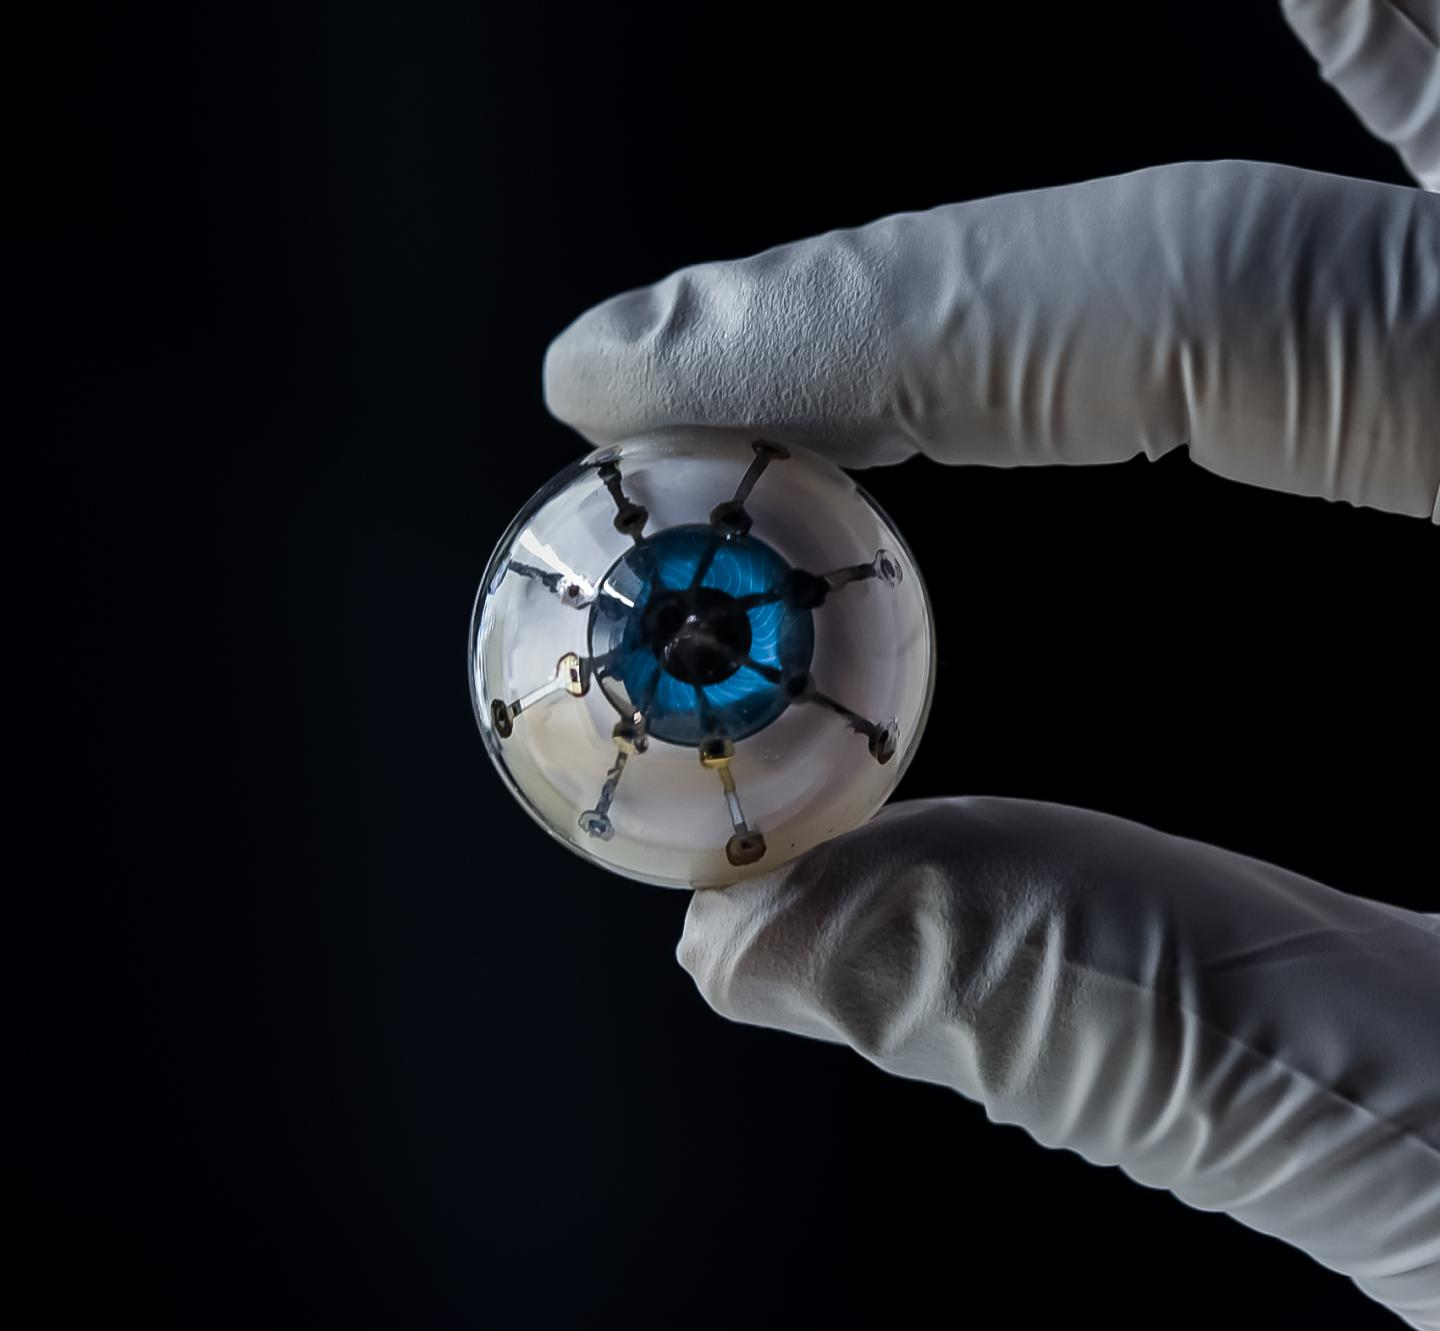 3d-printed 'bionic eye' prototype from the University of Minnesota.